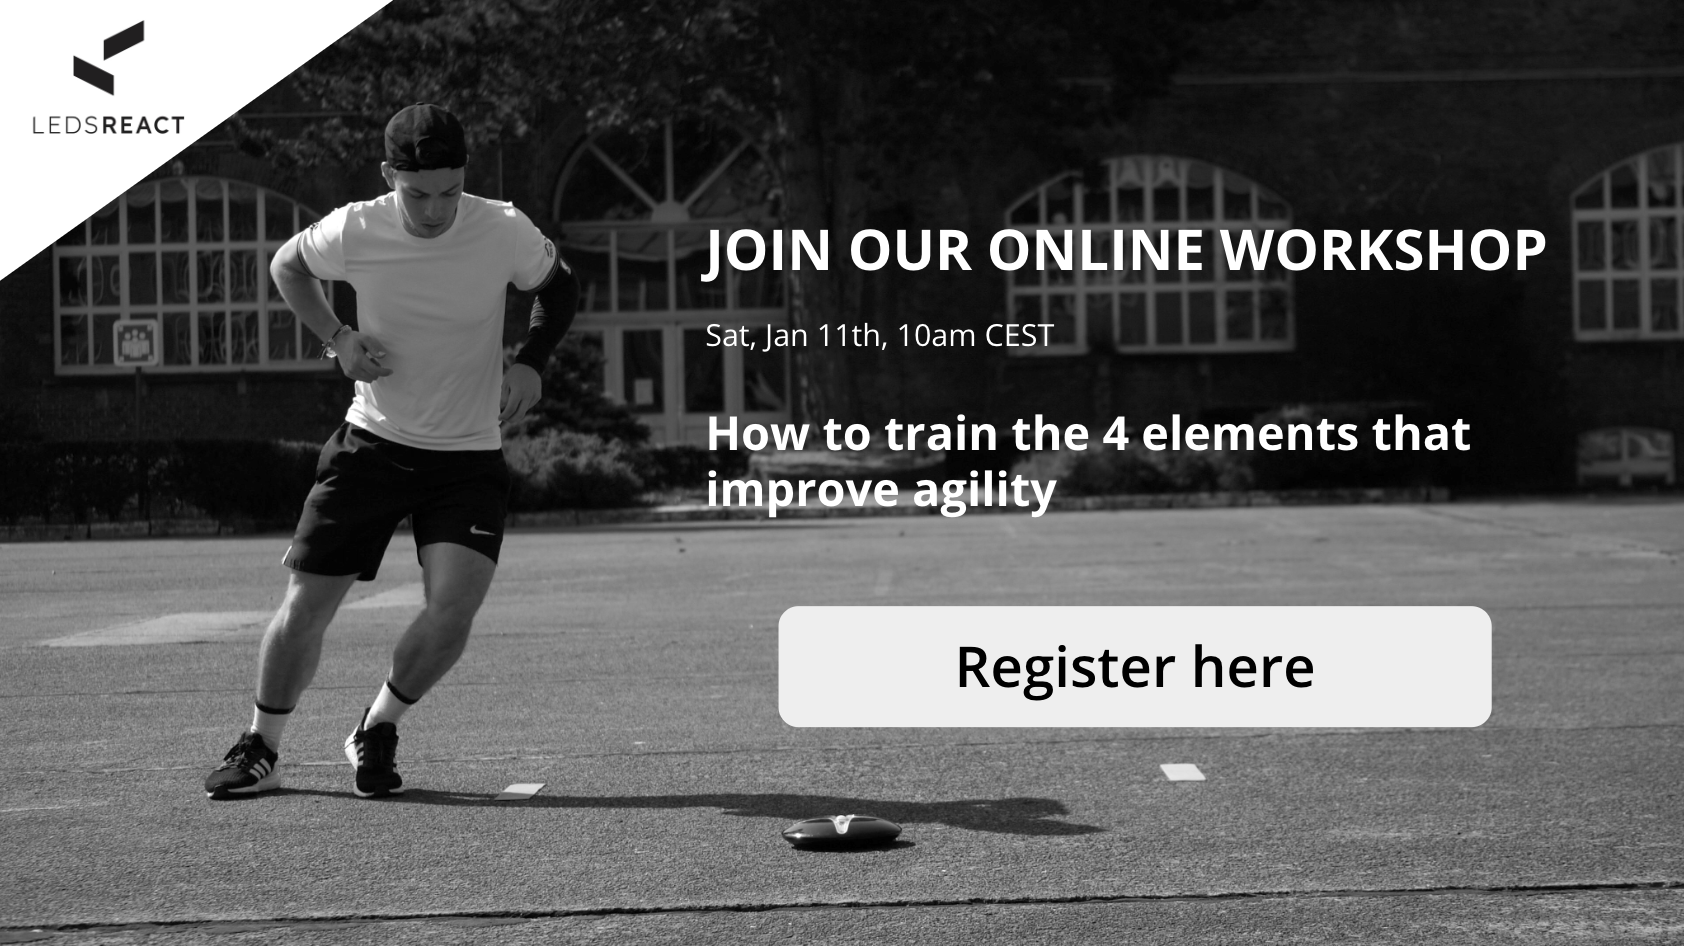 Join our online workshop about agility